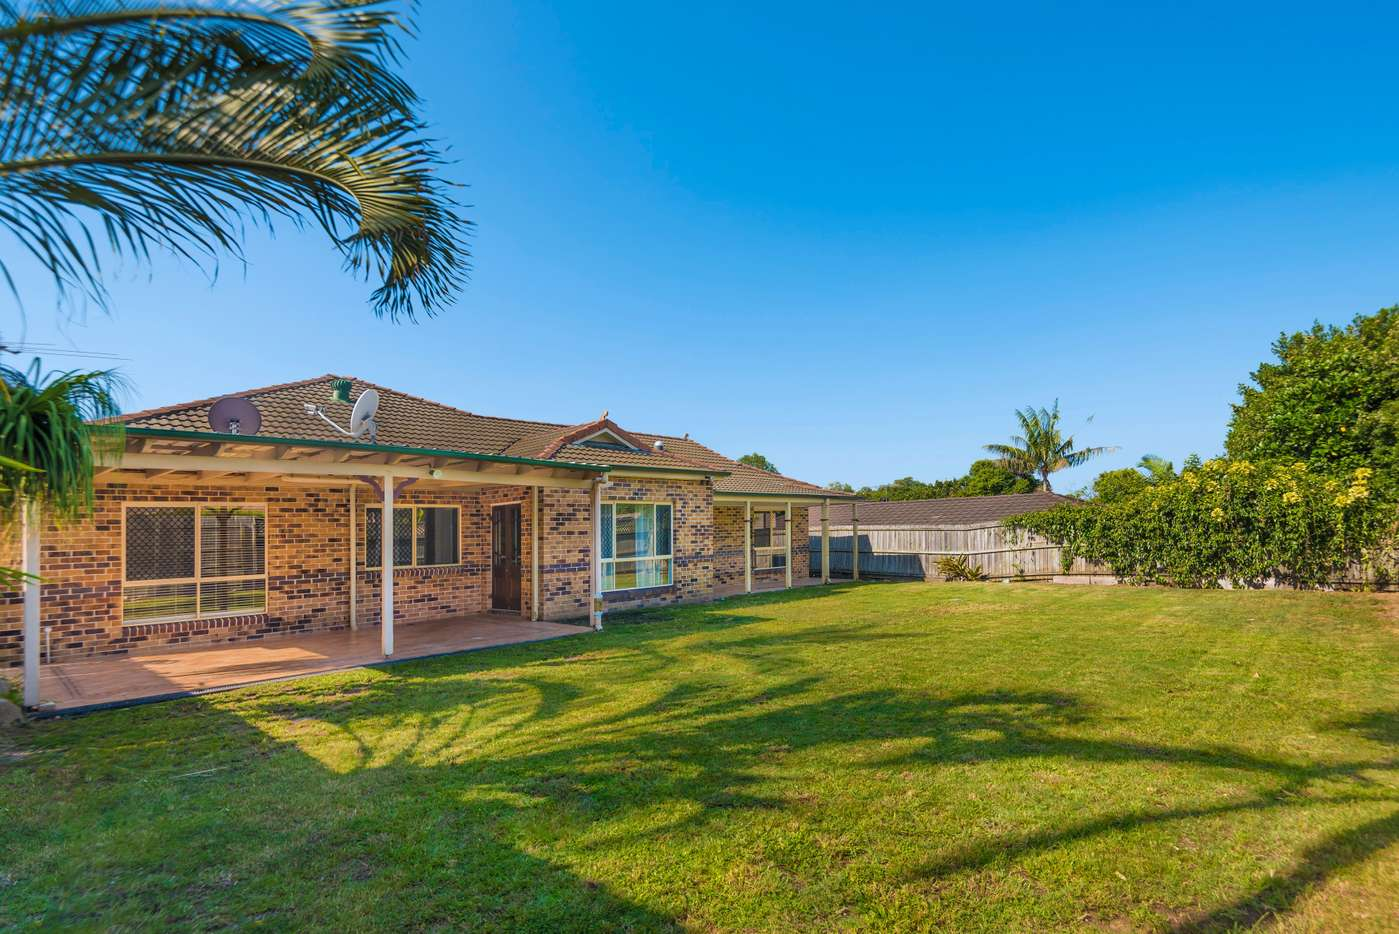 Main view of Homely house listing, 43 Oxford Crescent, Bridgeman Downs, QLD 4035